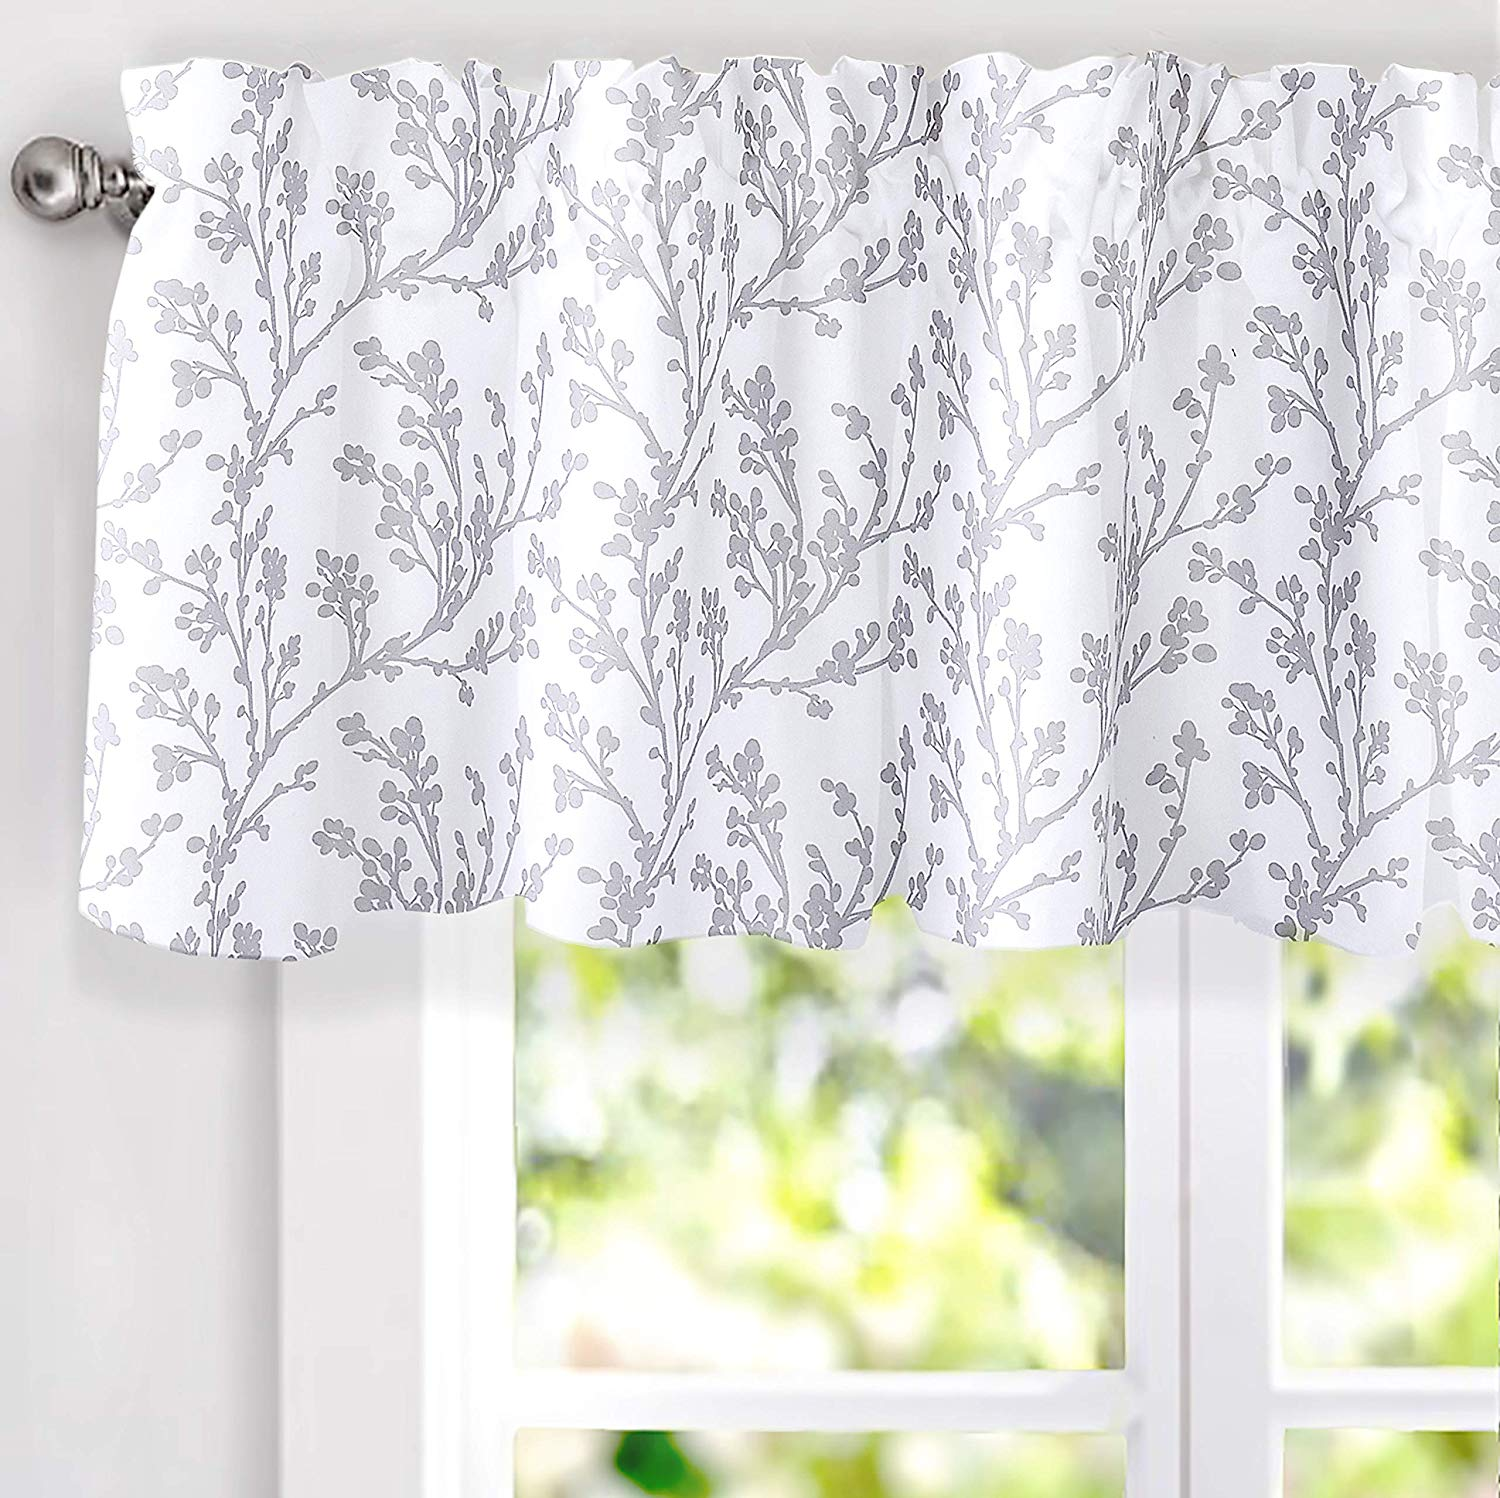 driftaway sarah floral tree branch pattern thermal insulated blackout window curtain valance rod pocket 2 layers 52 inch by 18 inch gray